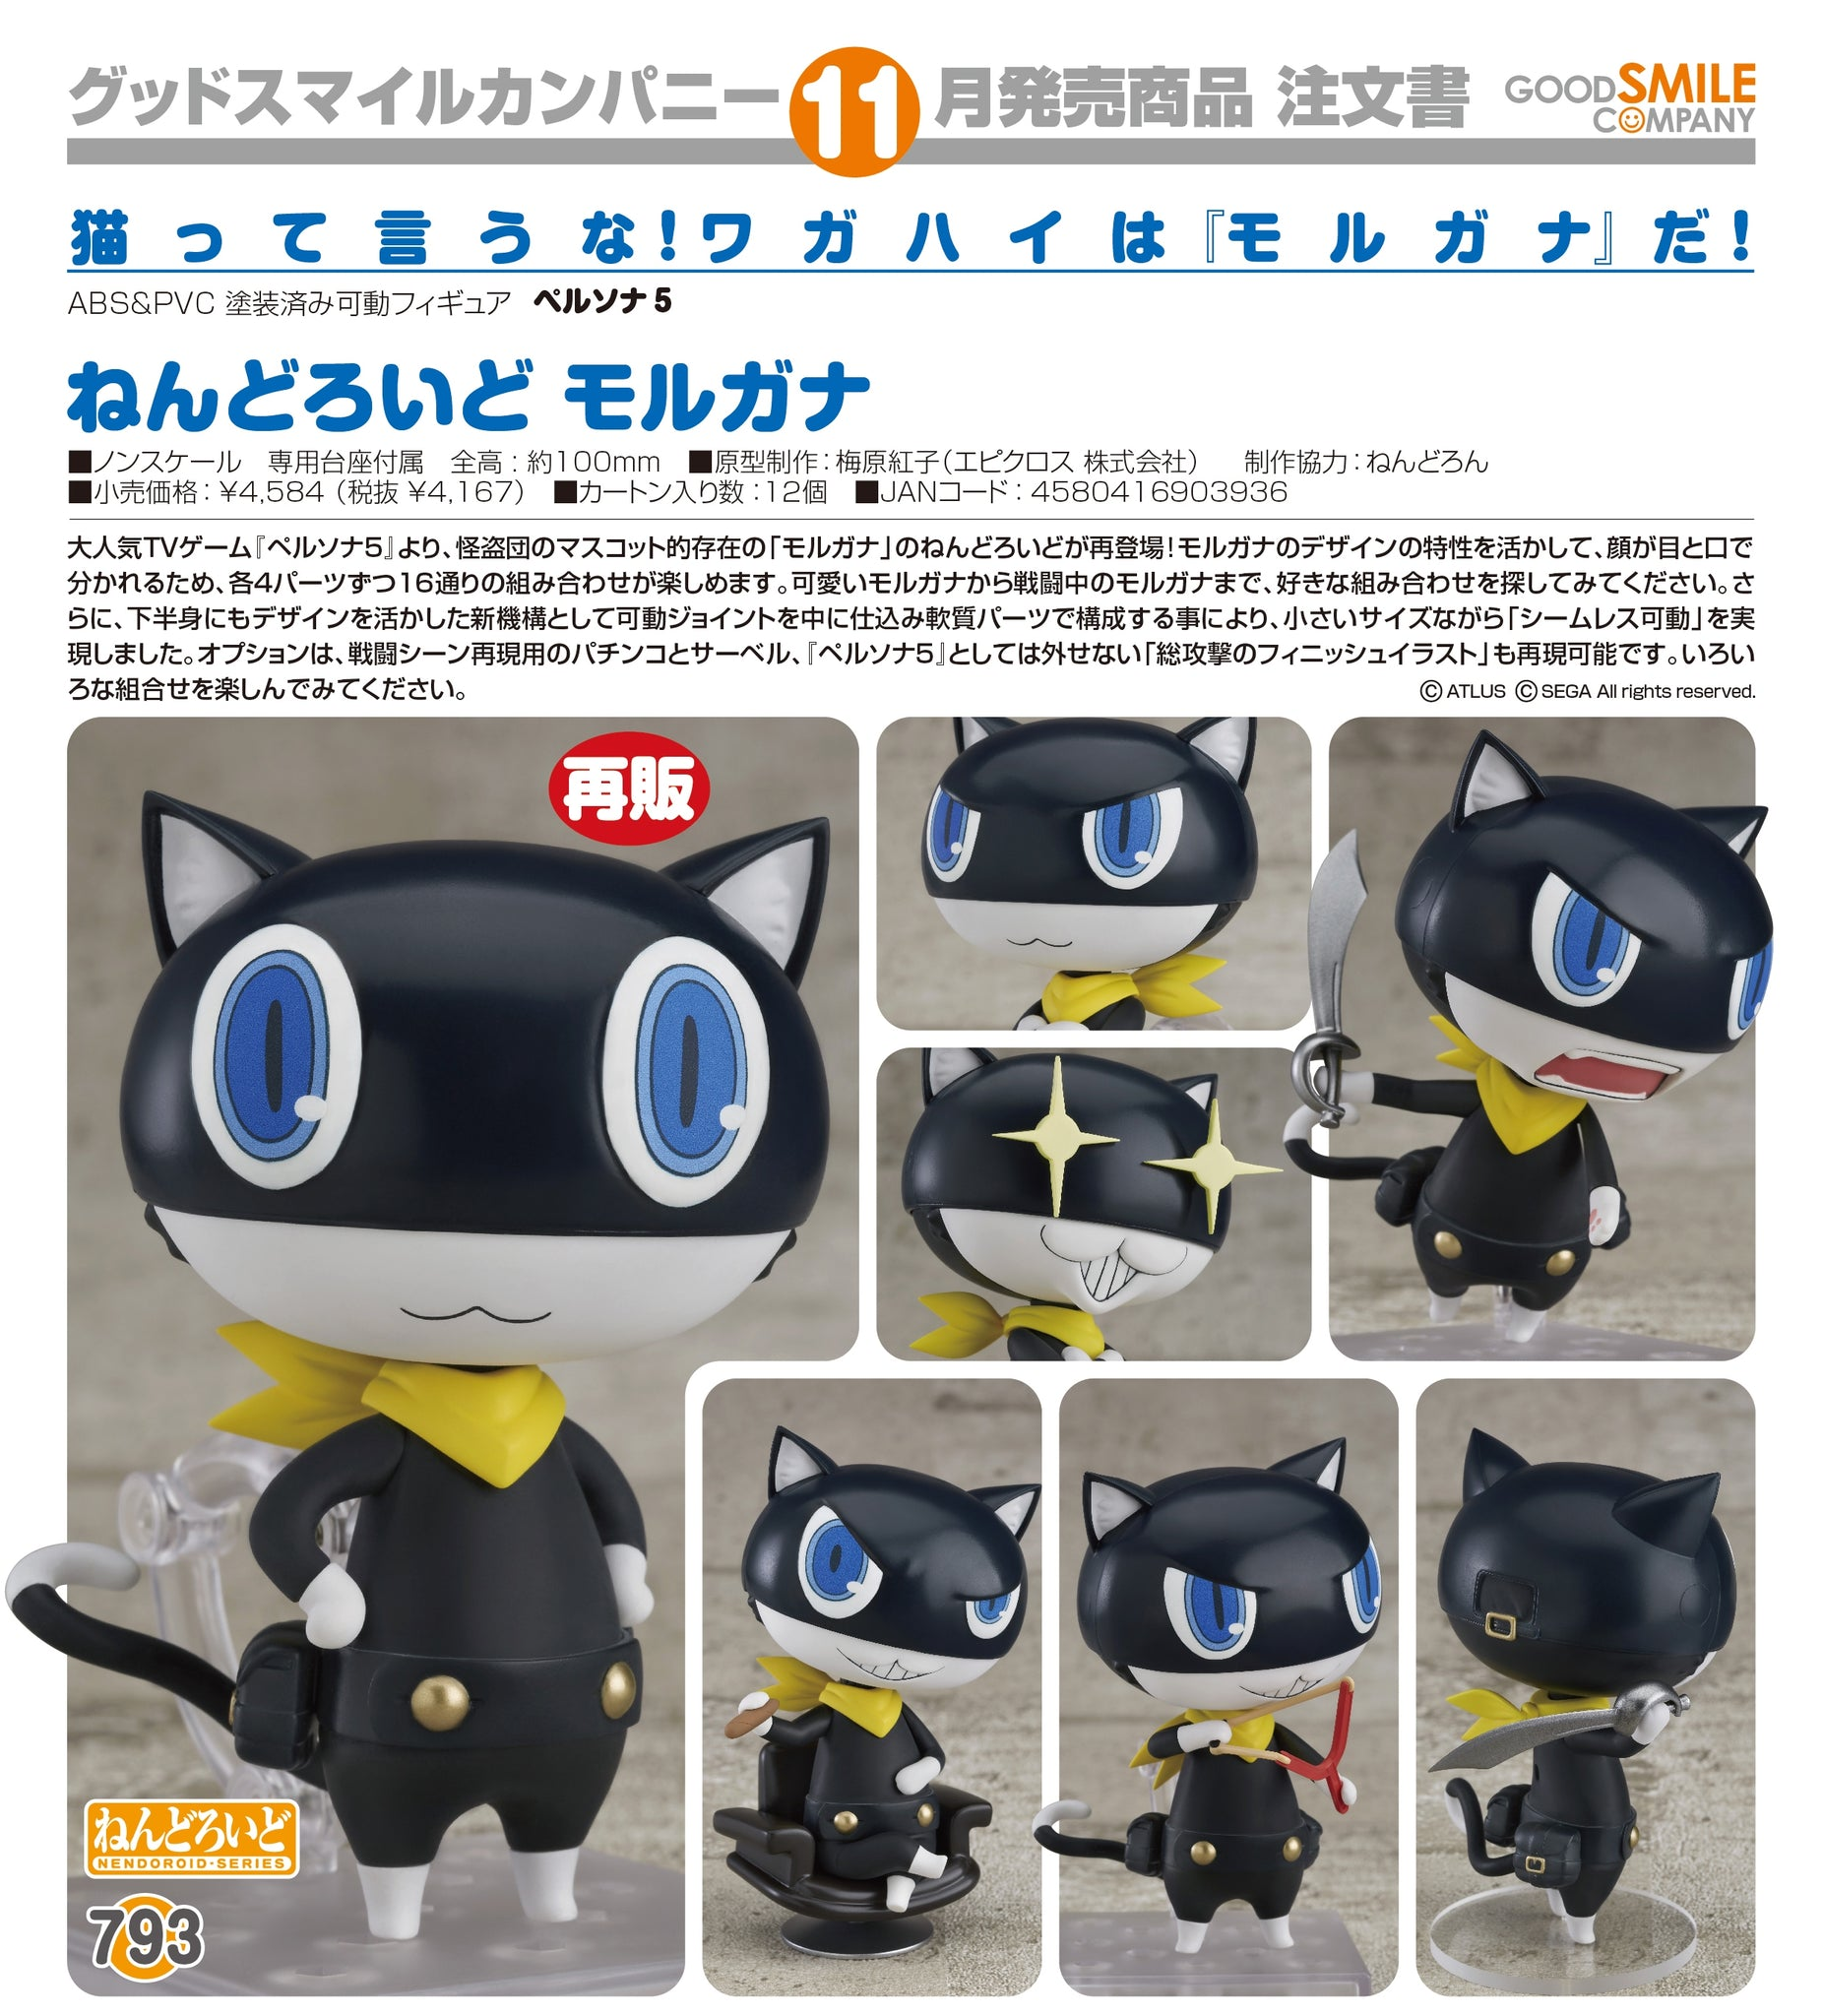 【預訂日期至30-Jun-19】Good Smile Company Nendoroid No.793 Persona Morgana [再販]